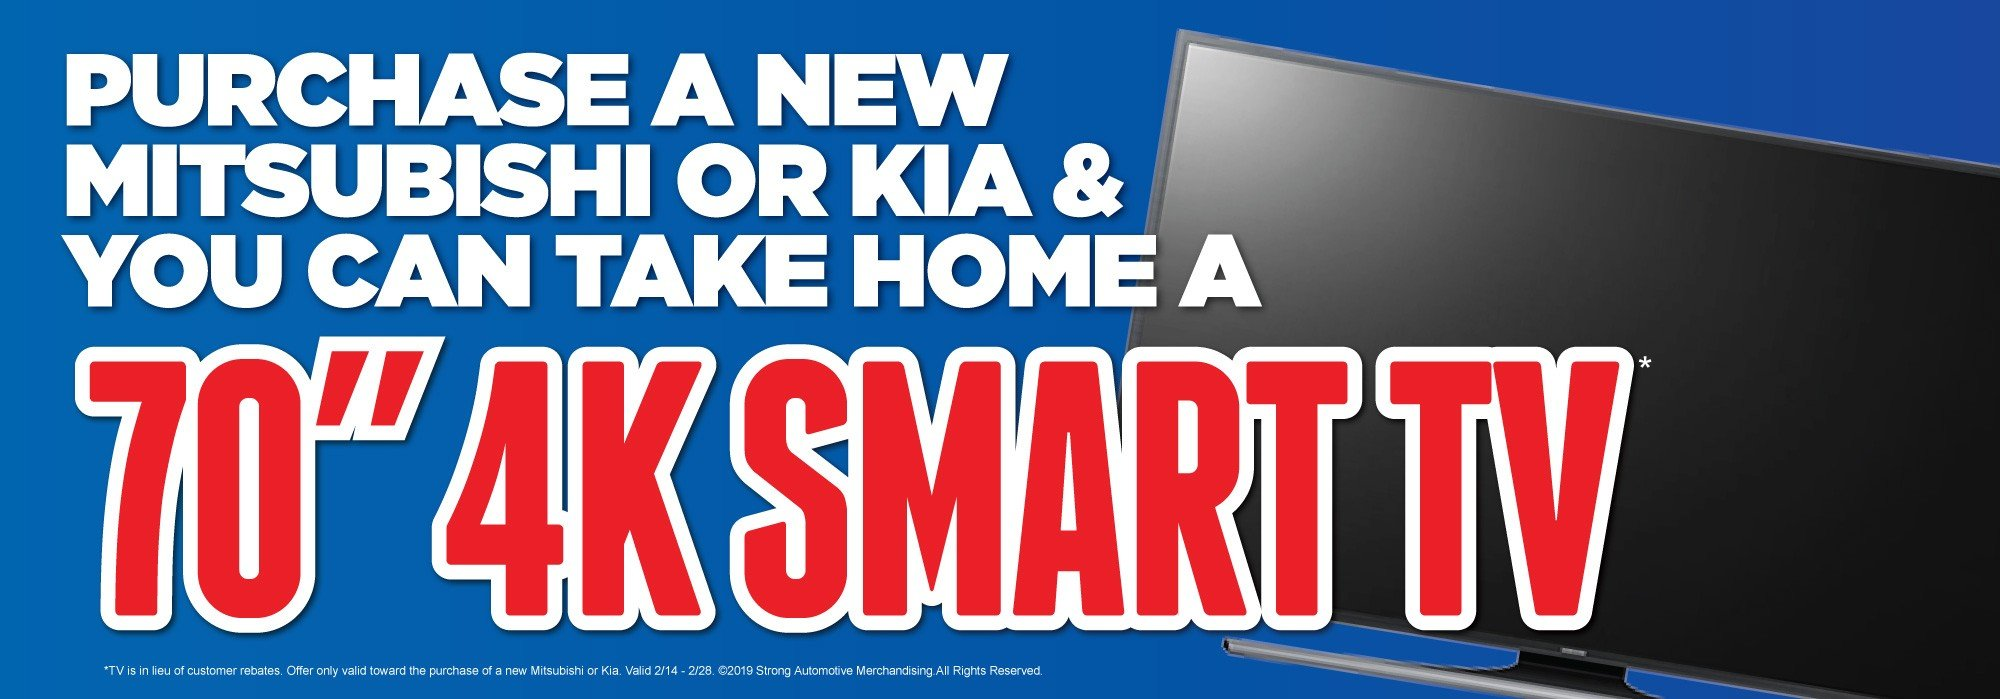 Take Home a TV with Purchase of Kia or Mitsubishi